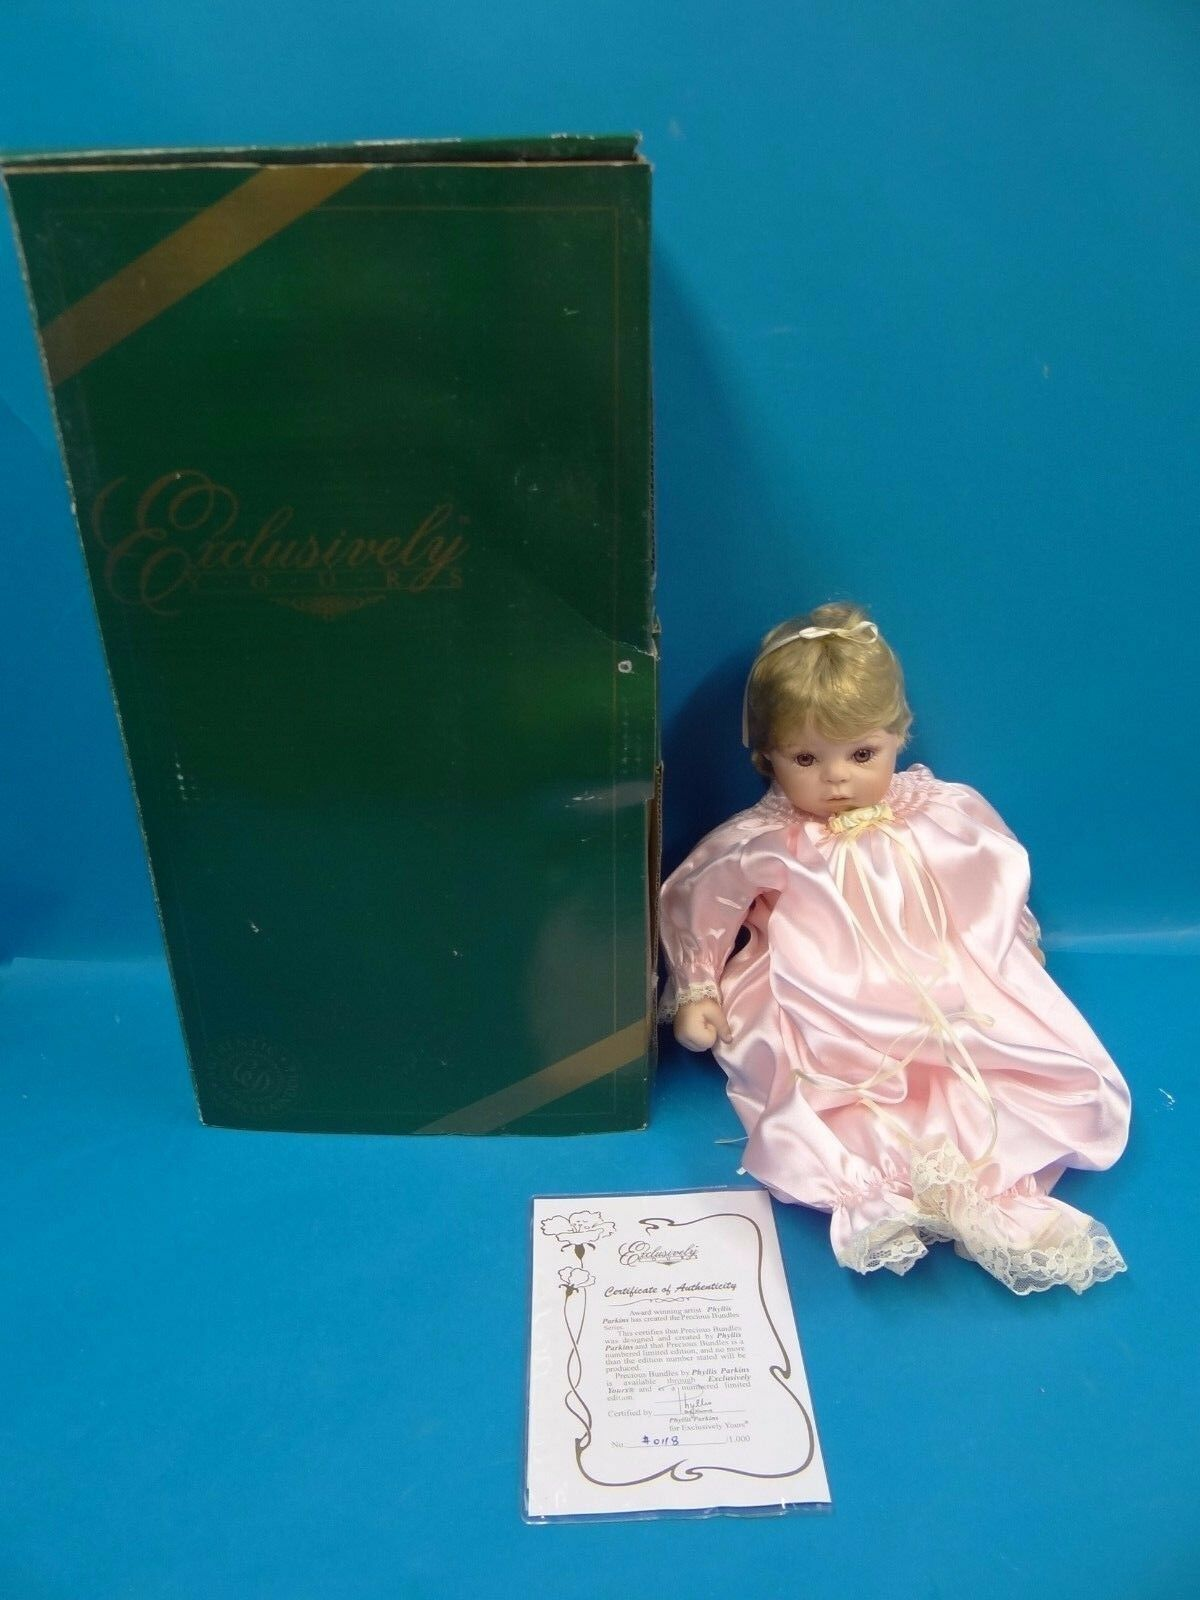 Exclusively Yours Authentic Porcelain Phyllis Parkins Limited ED 118/1000 Doll